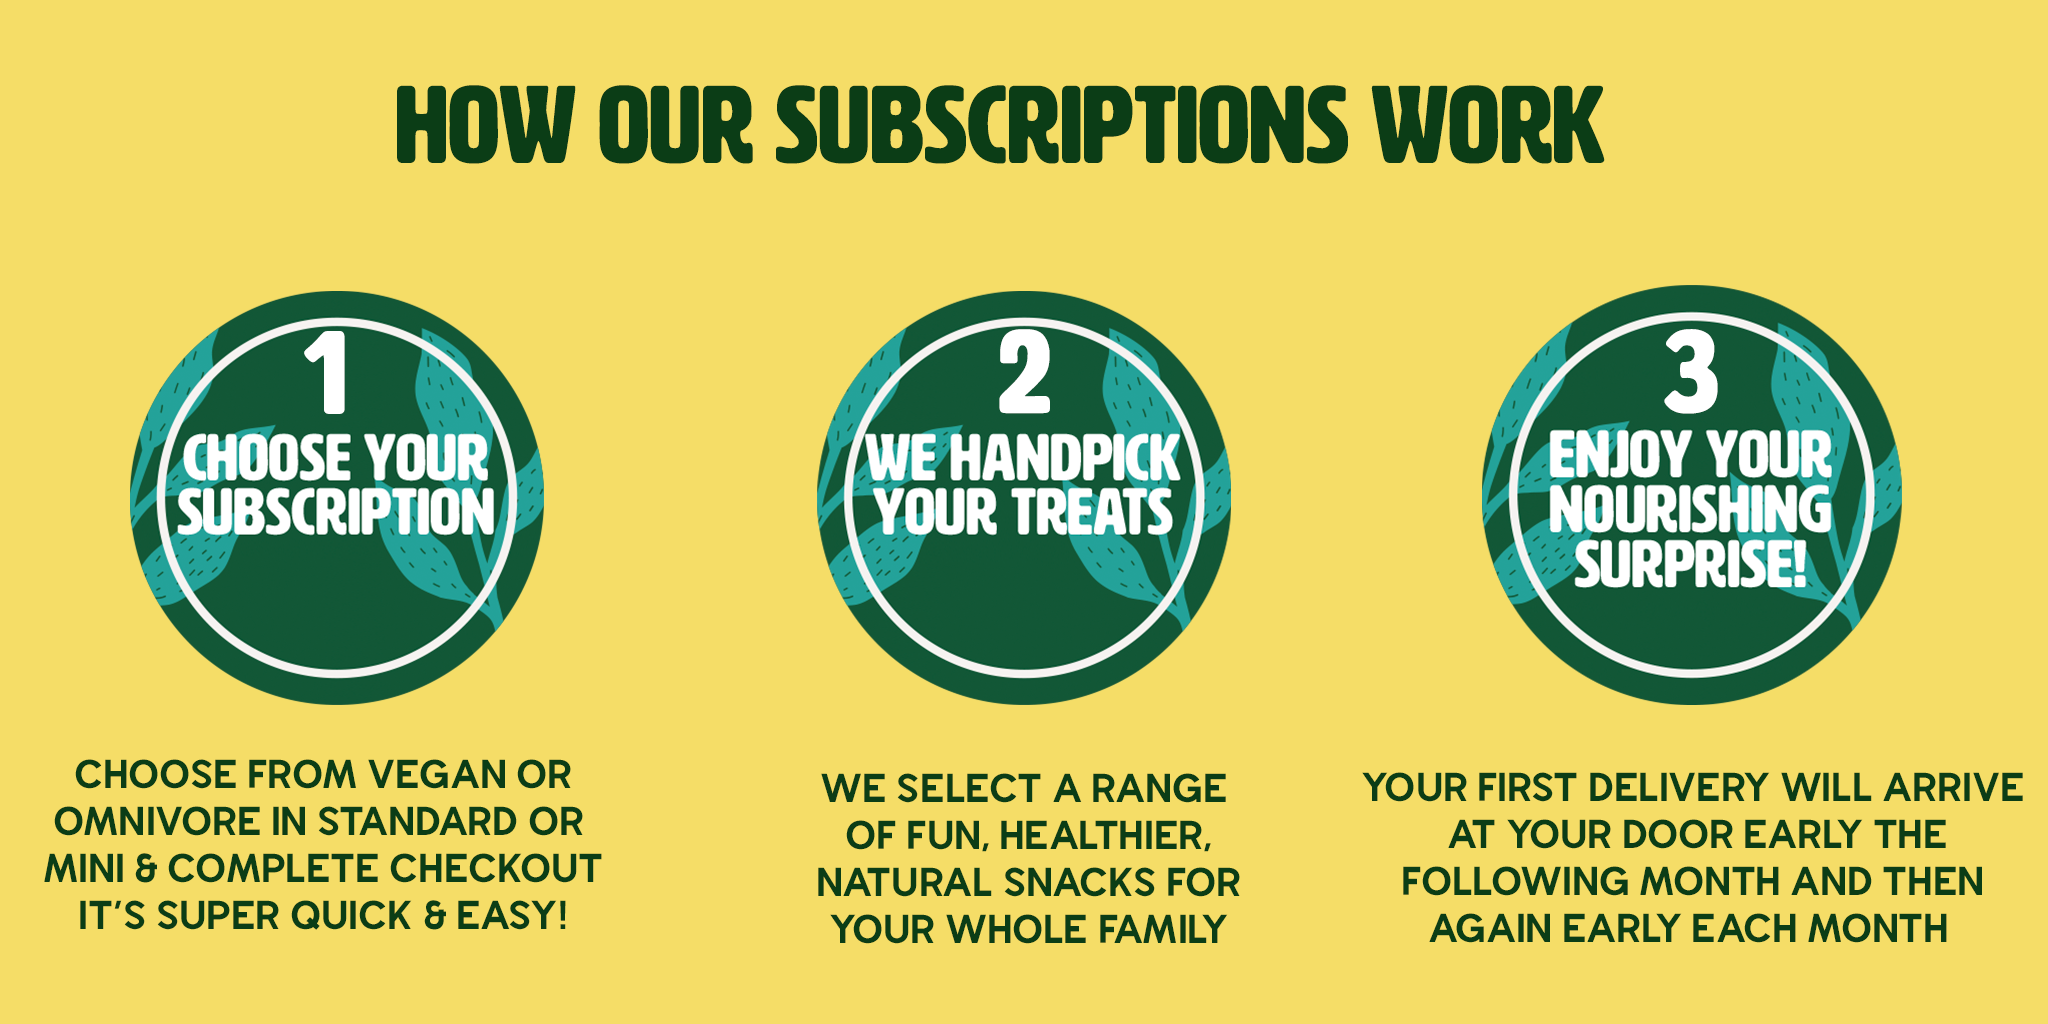 How our subscriptions work